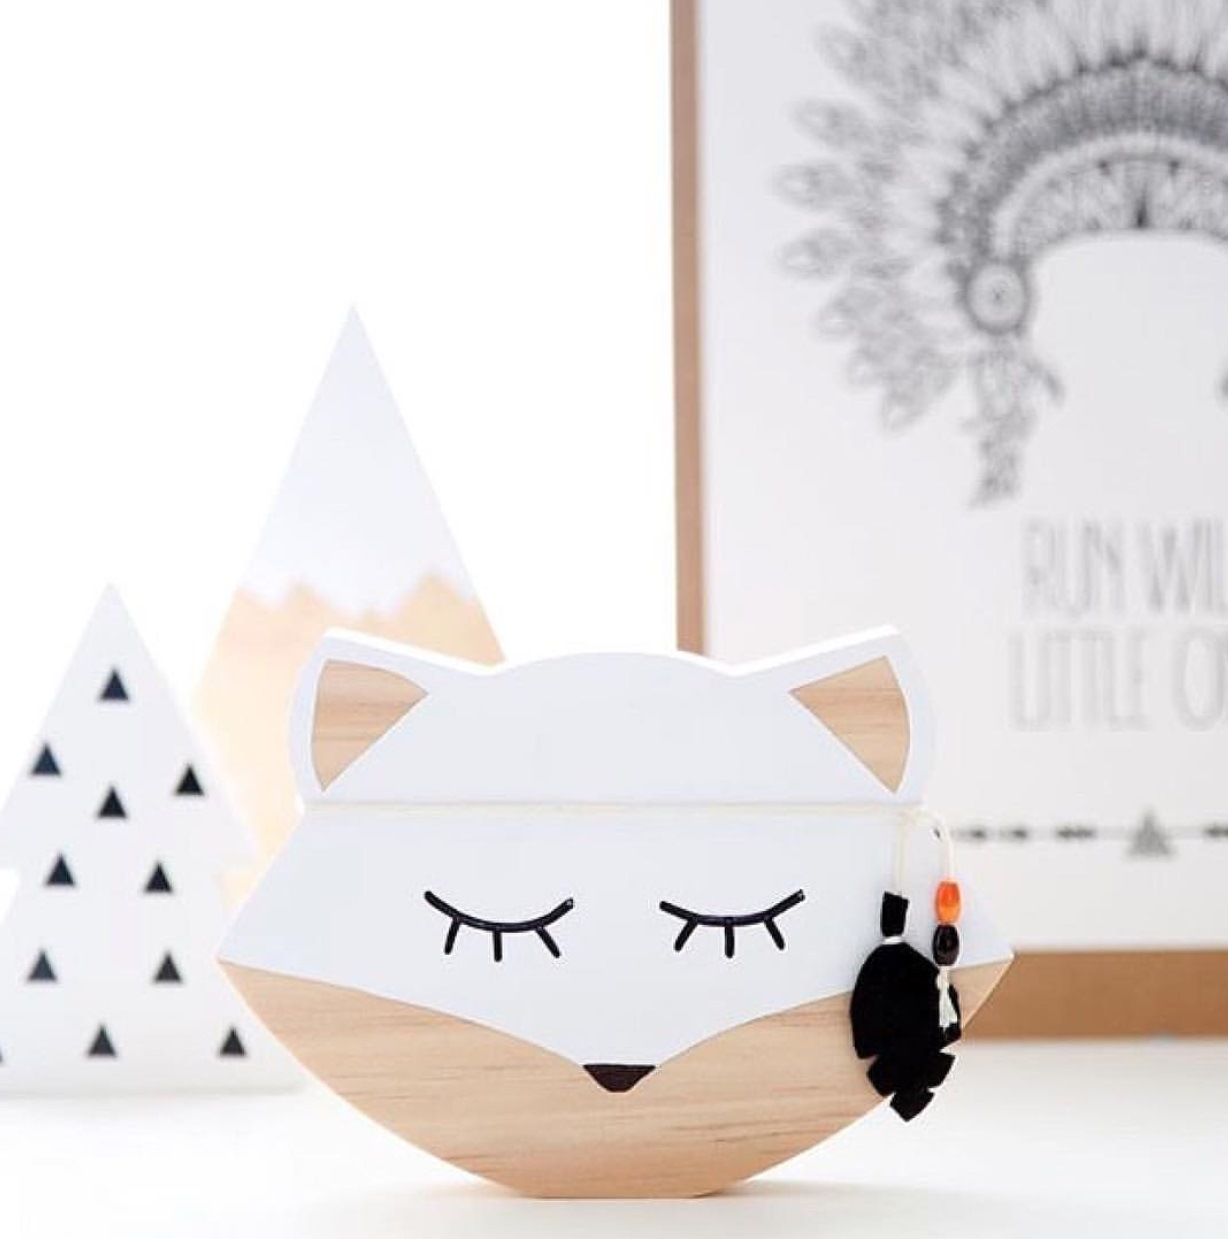 20*16cm Wooden Animal White Fox Sign Wall Art Decal For Nursery And Kids Room Decor Design Scandinavian Style Photography Props